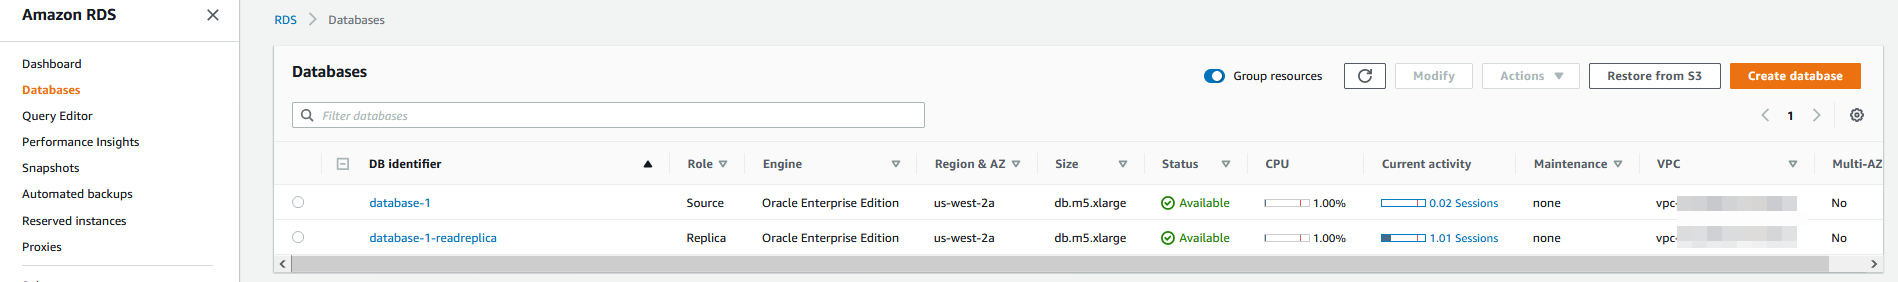 The Databases page displays a source database (database-1) and replica (database-1-readreplica).